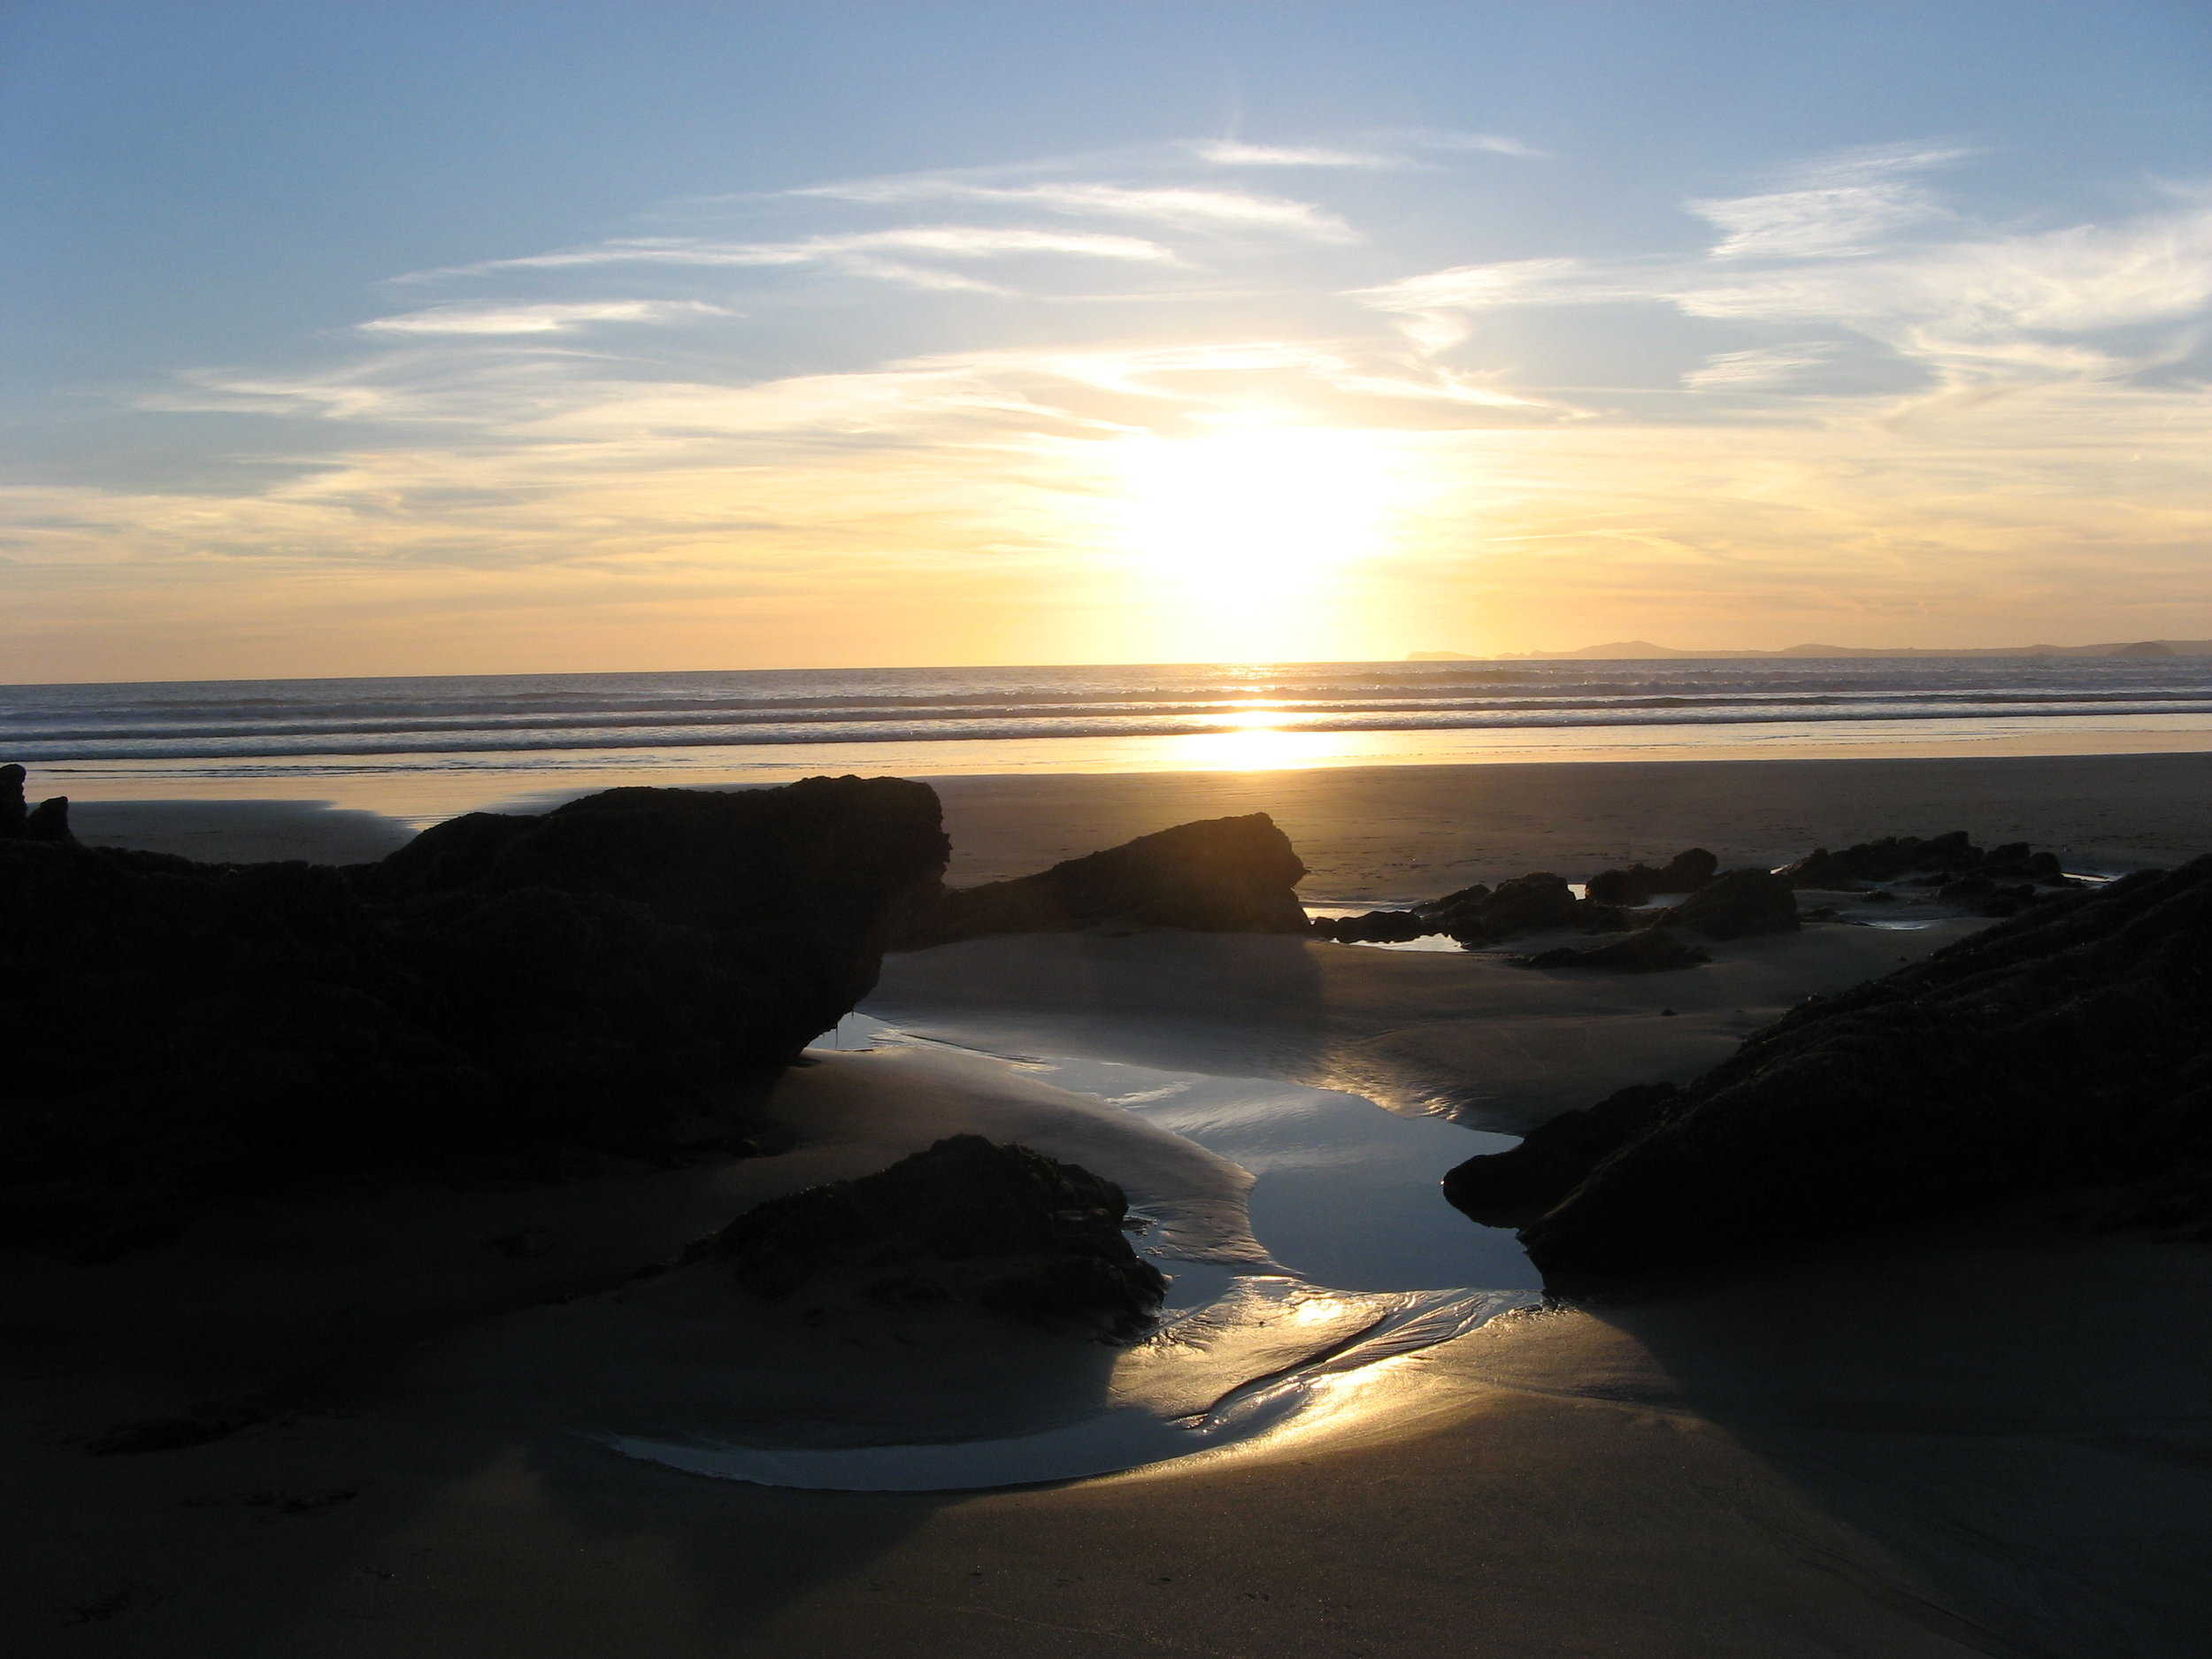 Sunset at our local beach - Newgale, Pembrokeshire